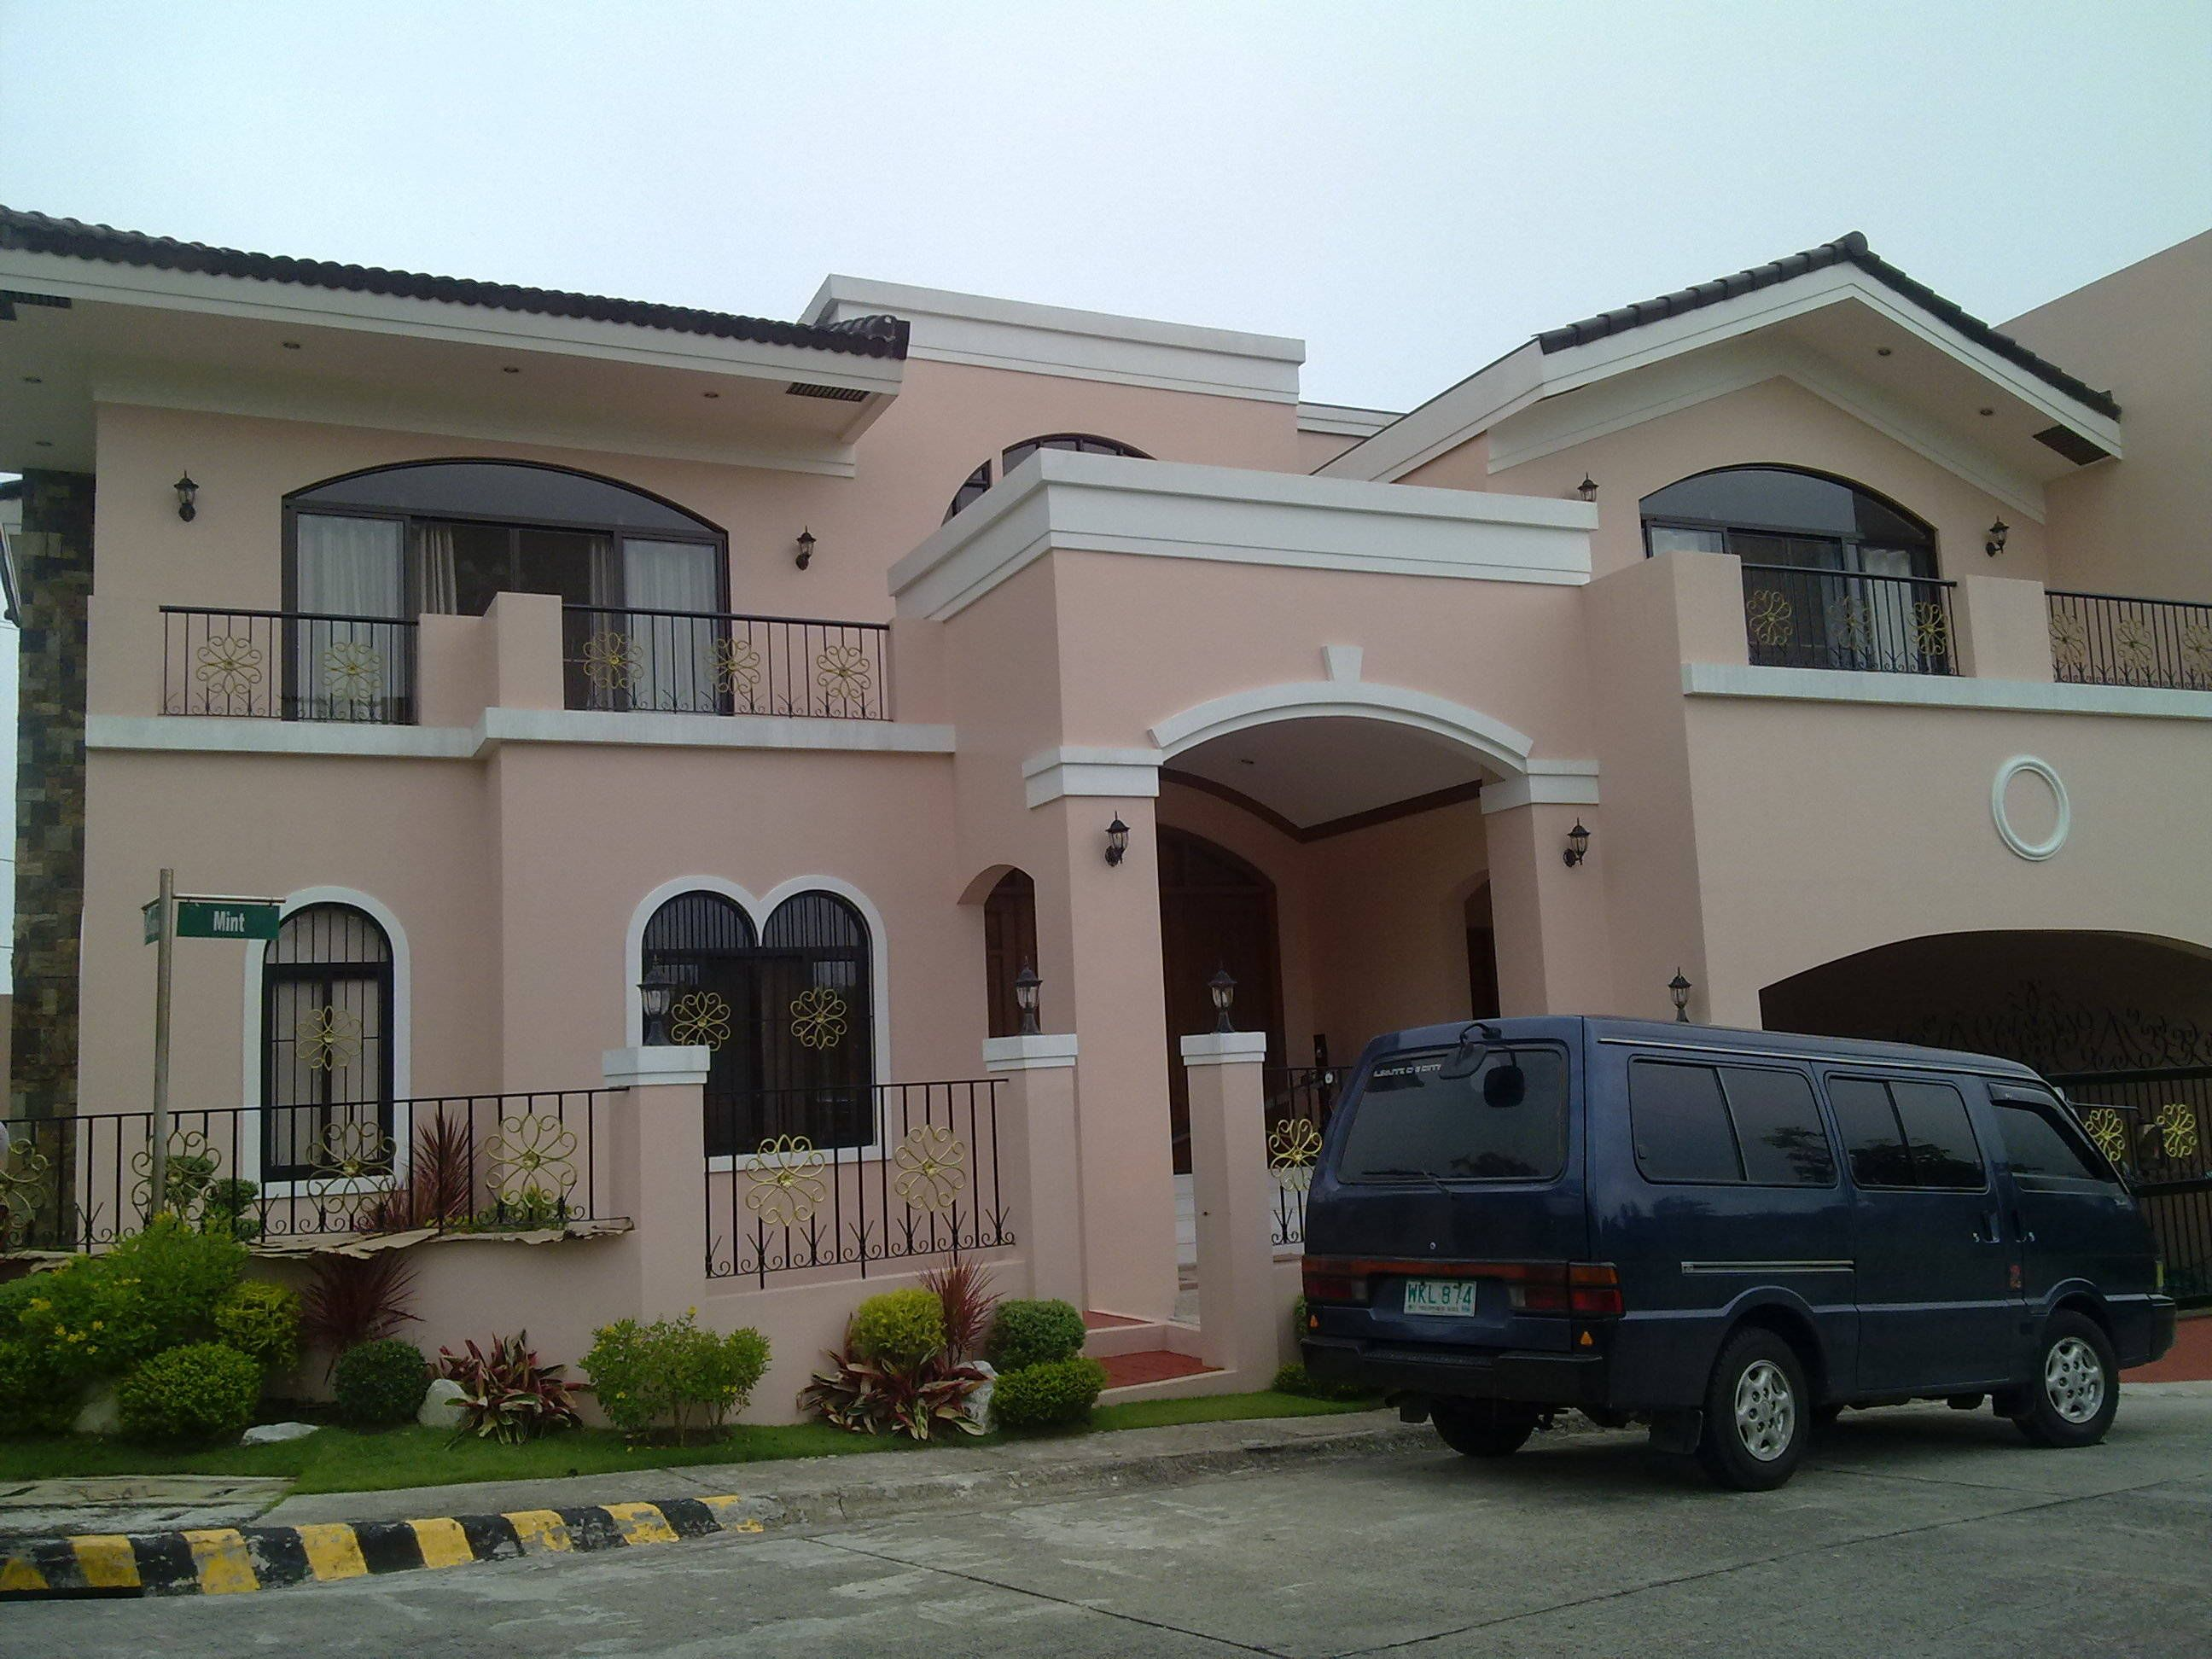 Crib for sale in pampanga - House For Sale Tagaytay Philippines House For Sale Tagaytay City Cavite Cavite